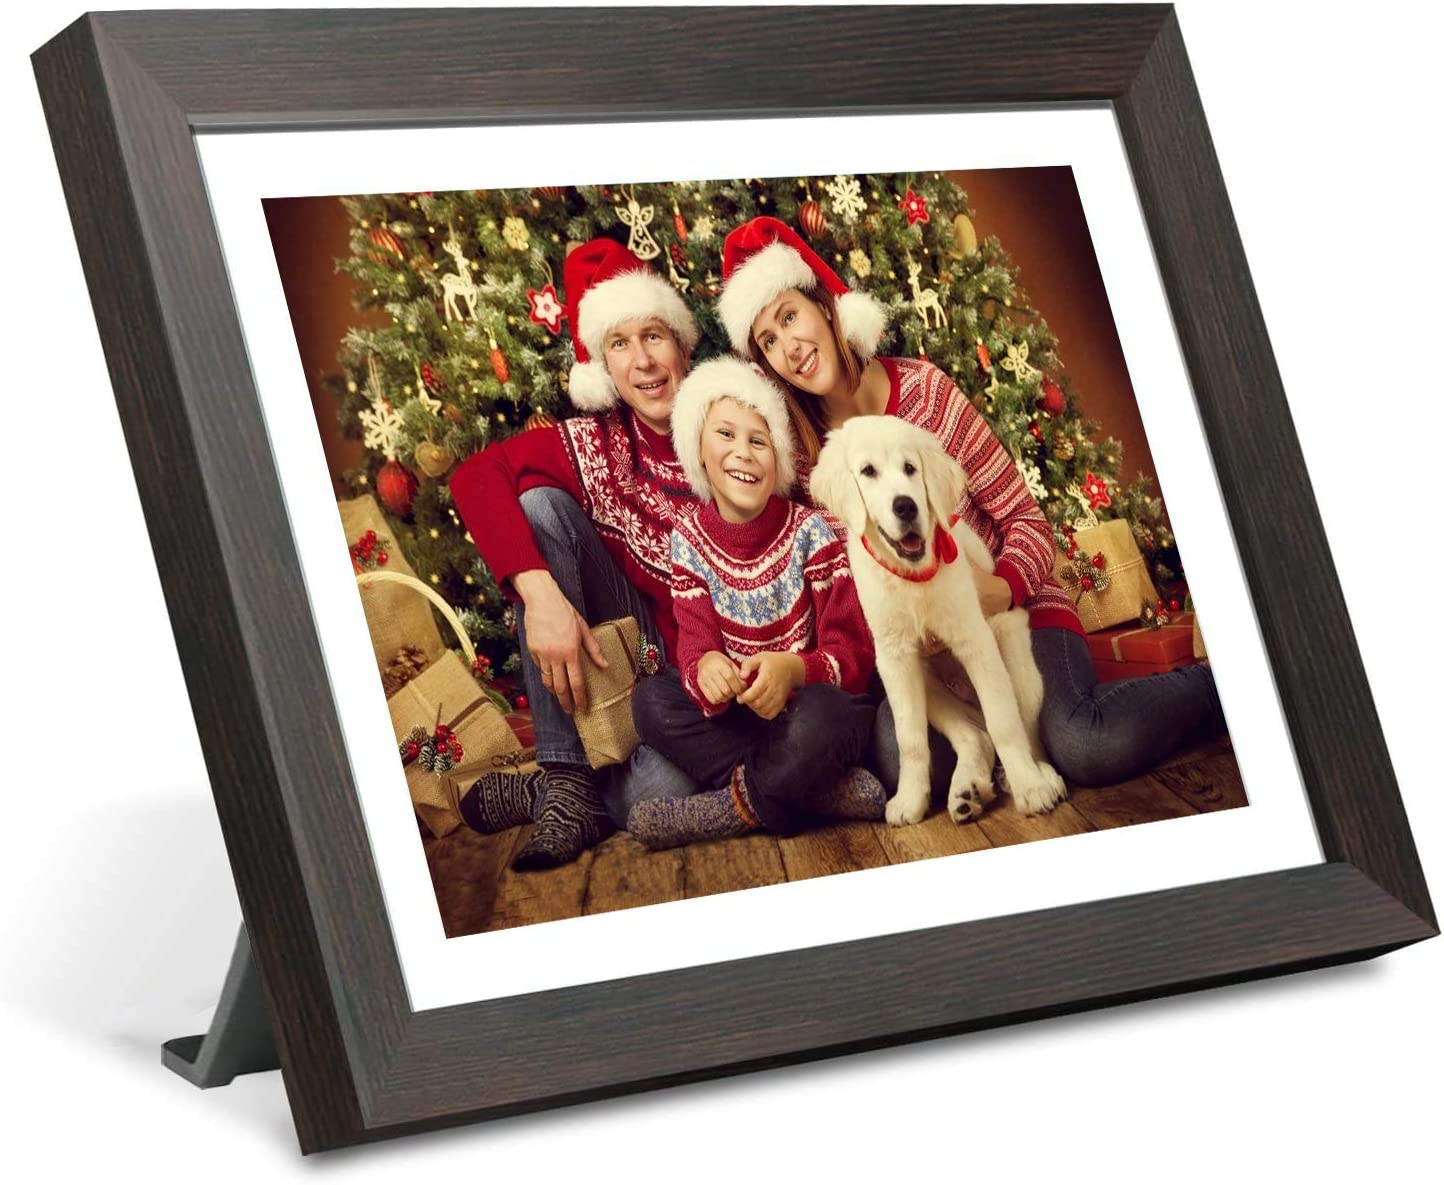 Smart WiFi Digital Picture Frame,10 inch IPS Touch Screen HD LCD Display,1280×800 Resolution,16GB Storage,Auto-Rotate,Share Photos and Video via App at Anytime and Anywhere,Support USB Micro SD card